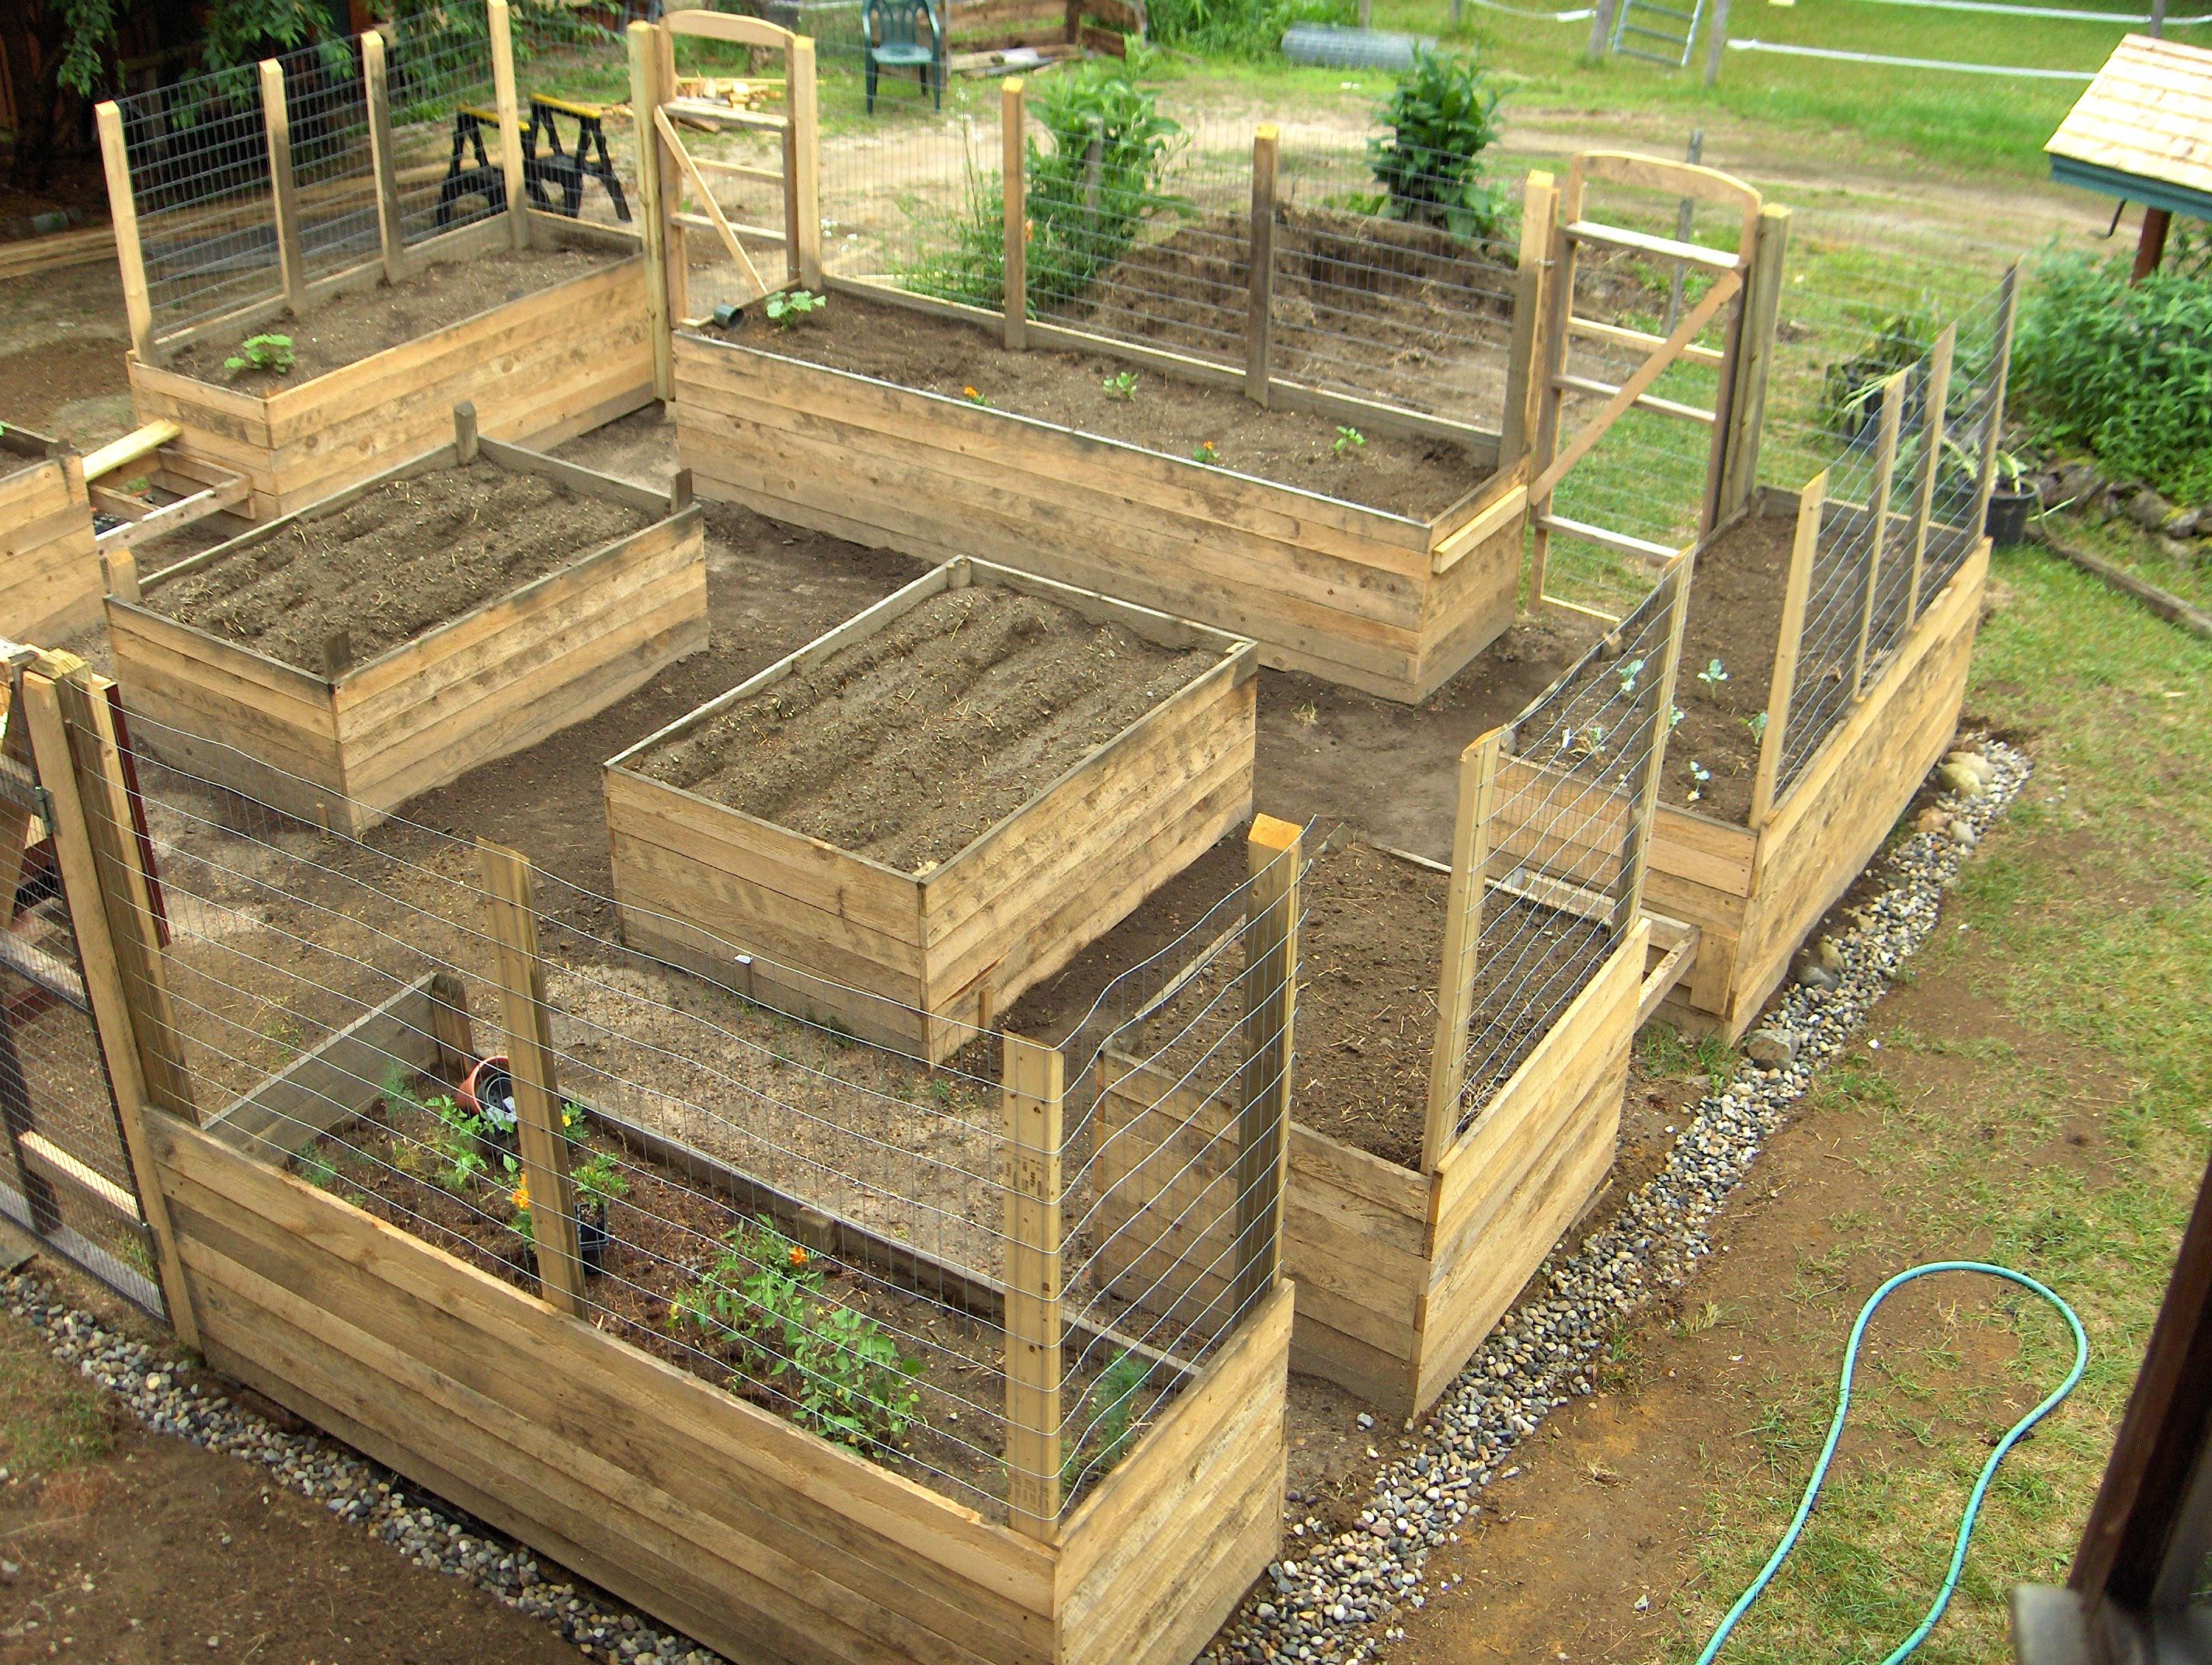 Vegetable garden deer fence ideas - Vegetable Garden Deer Fence Ideas 65